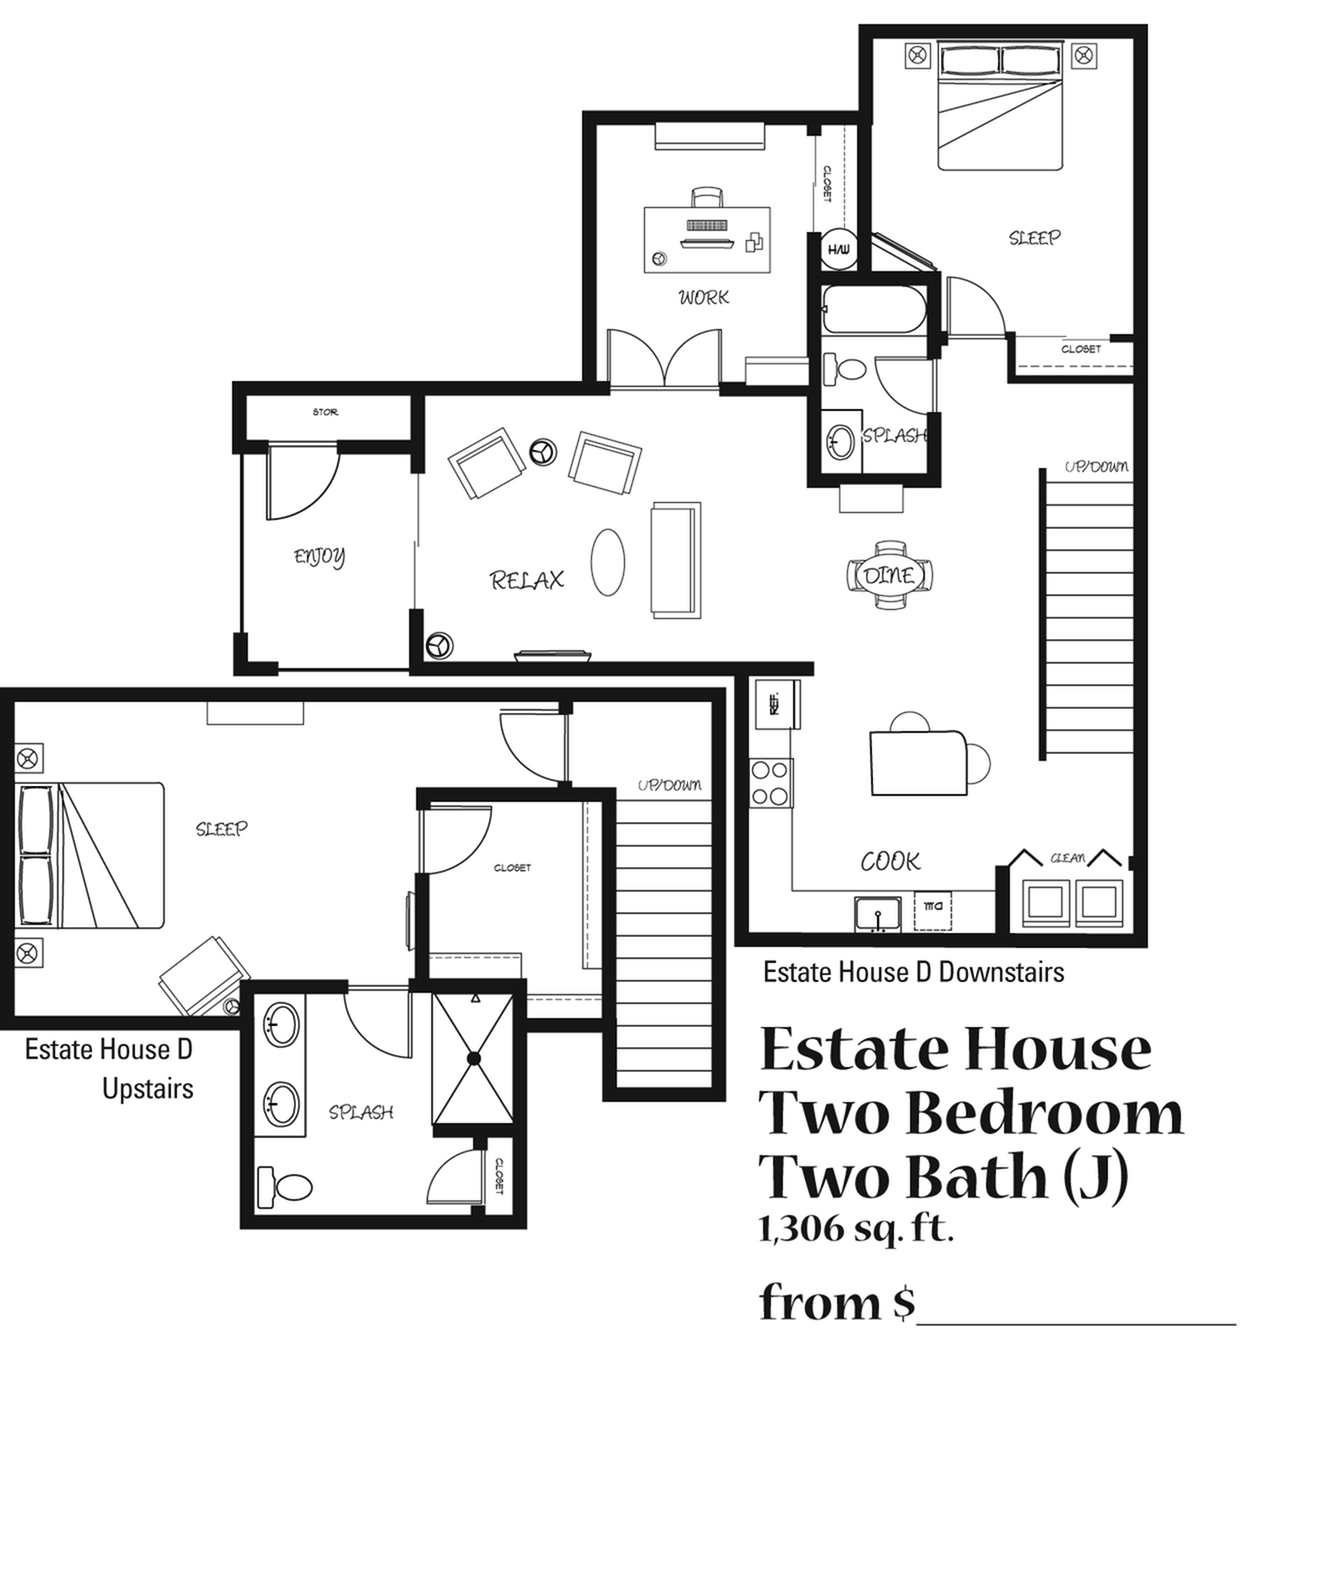 Three Bedroom, Two Bath Apartment at the 4425